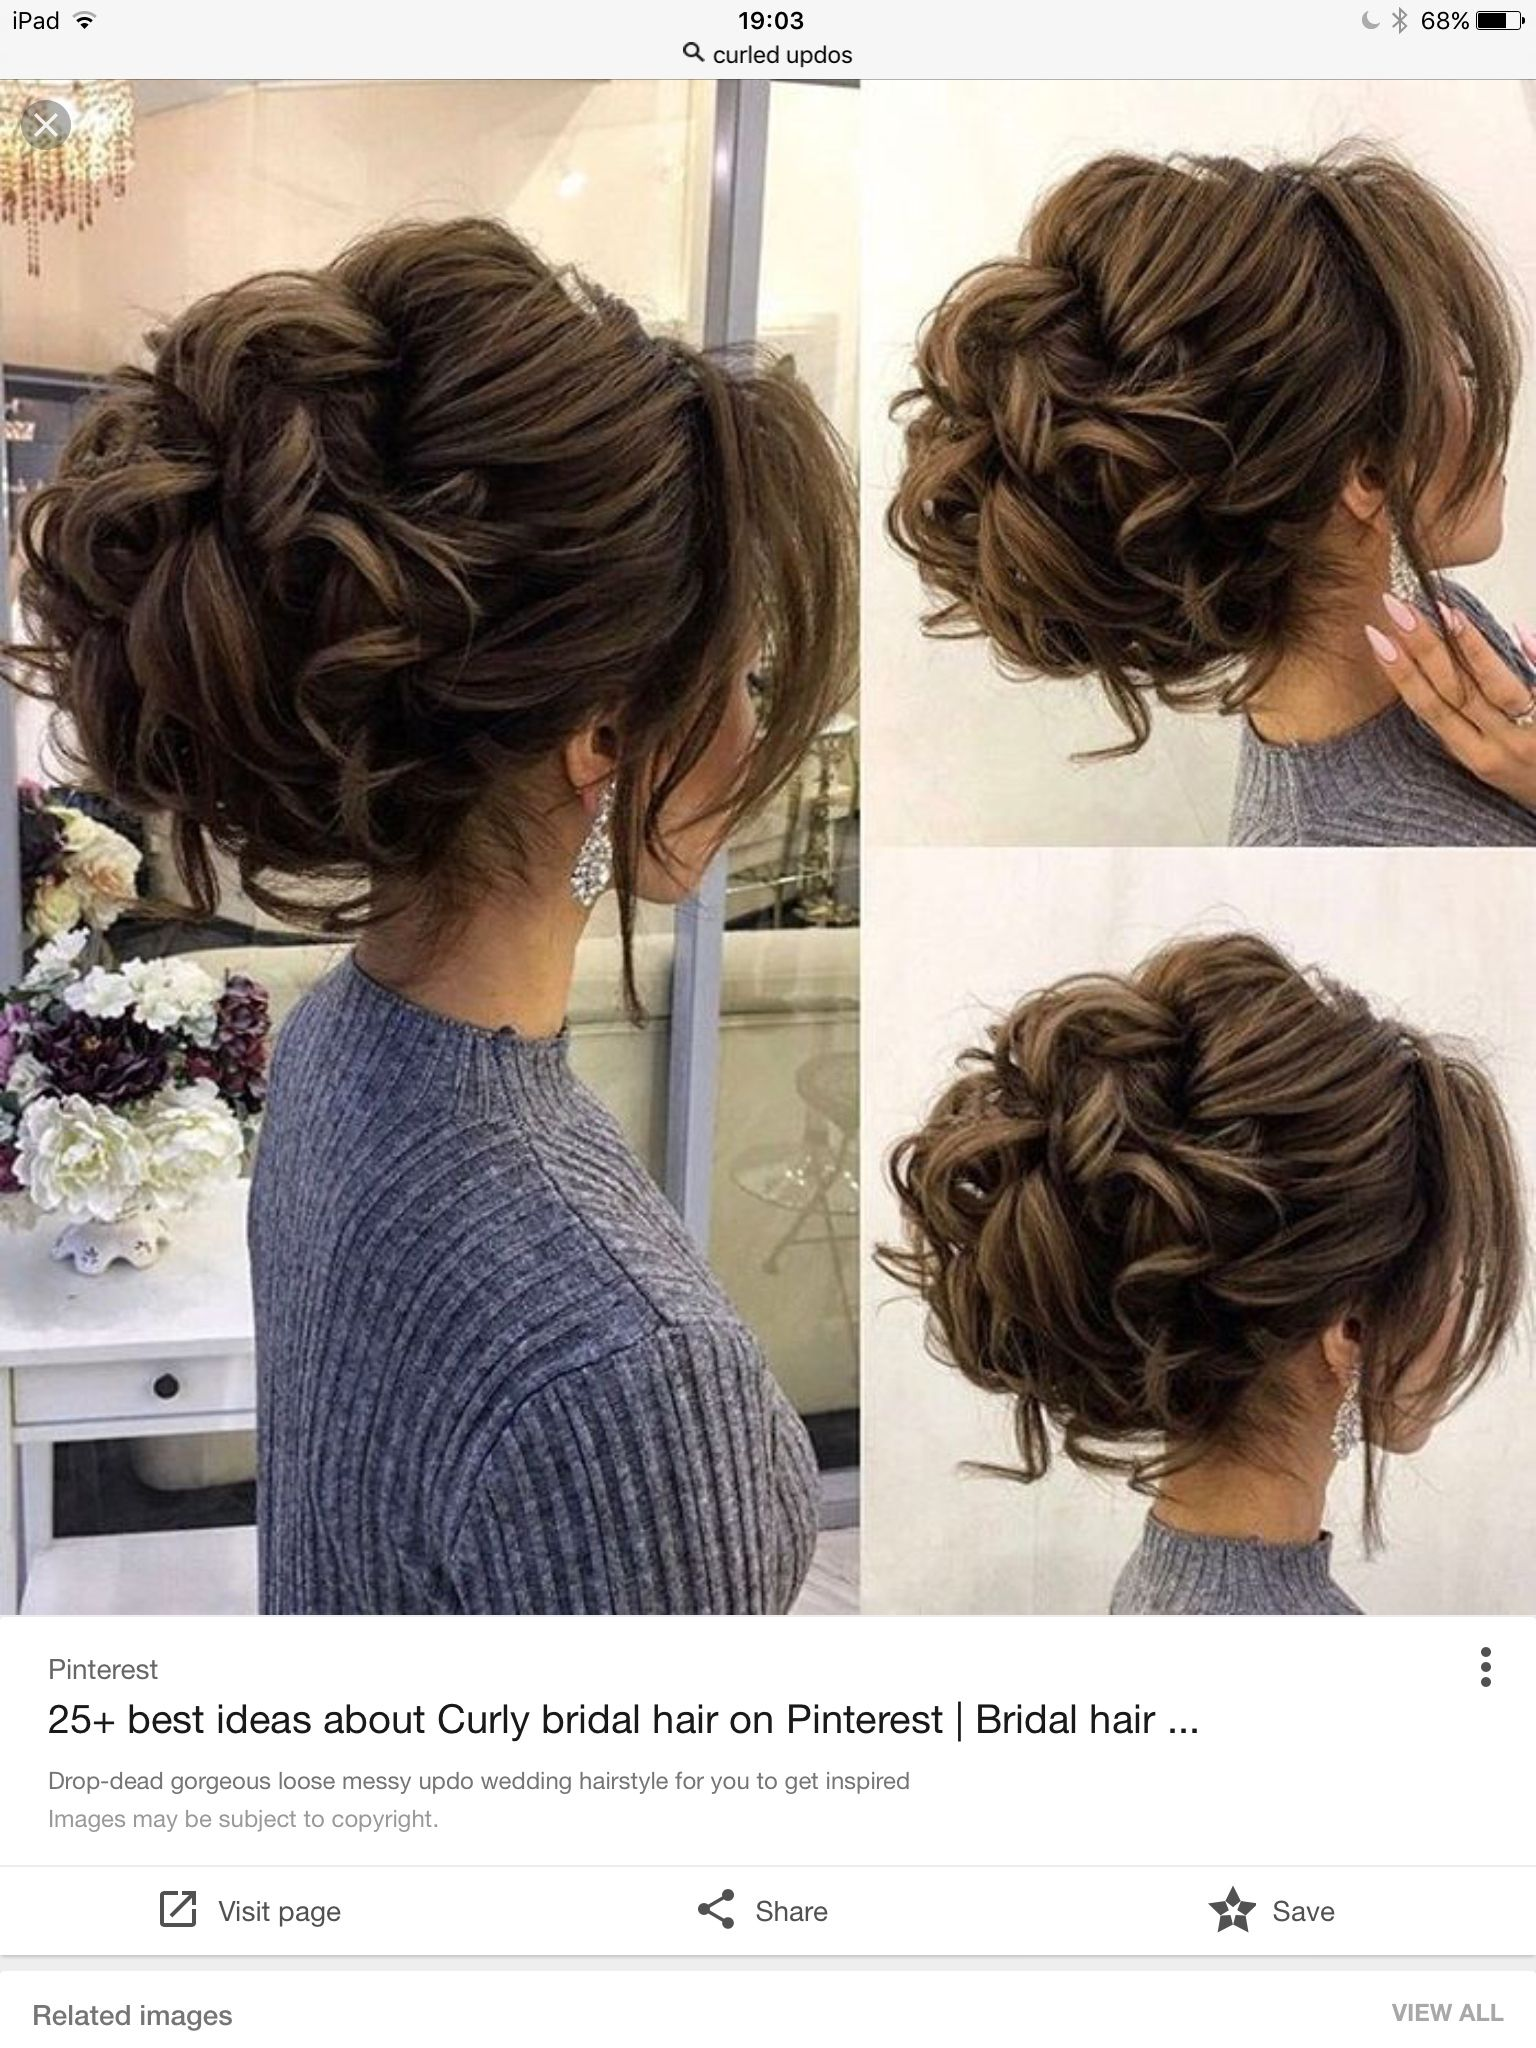 pin by prtha lastnight on hairstyles ideas in 2019 | prom